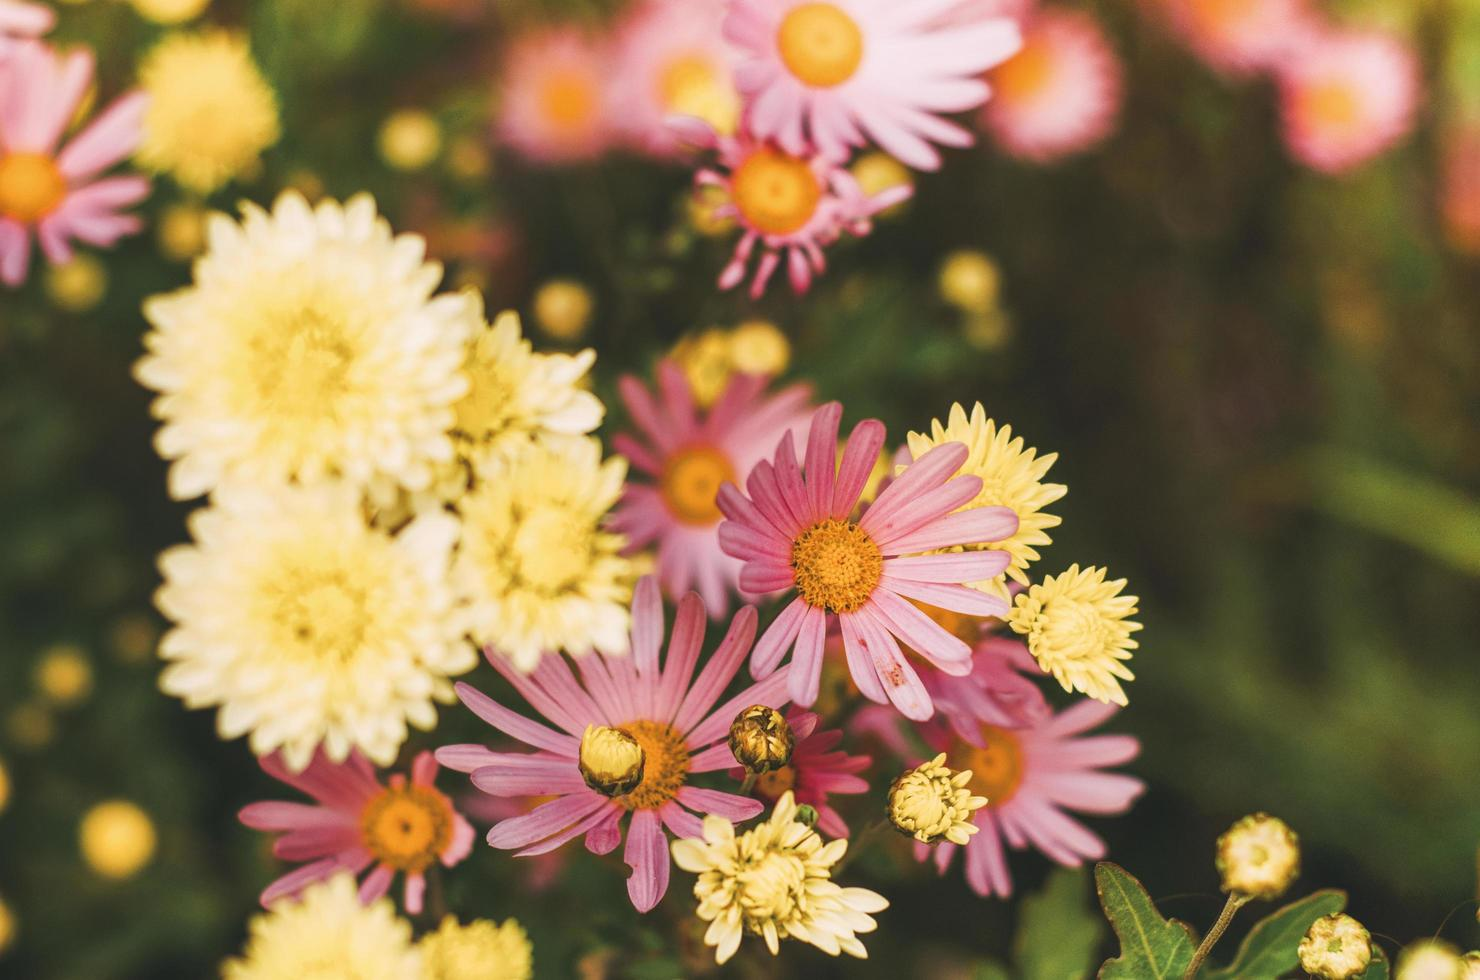 Colorful daisy flowers photo